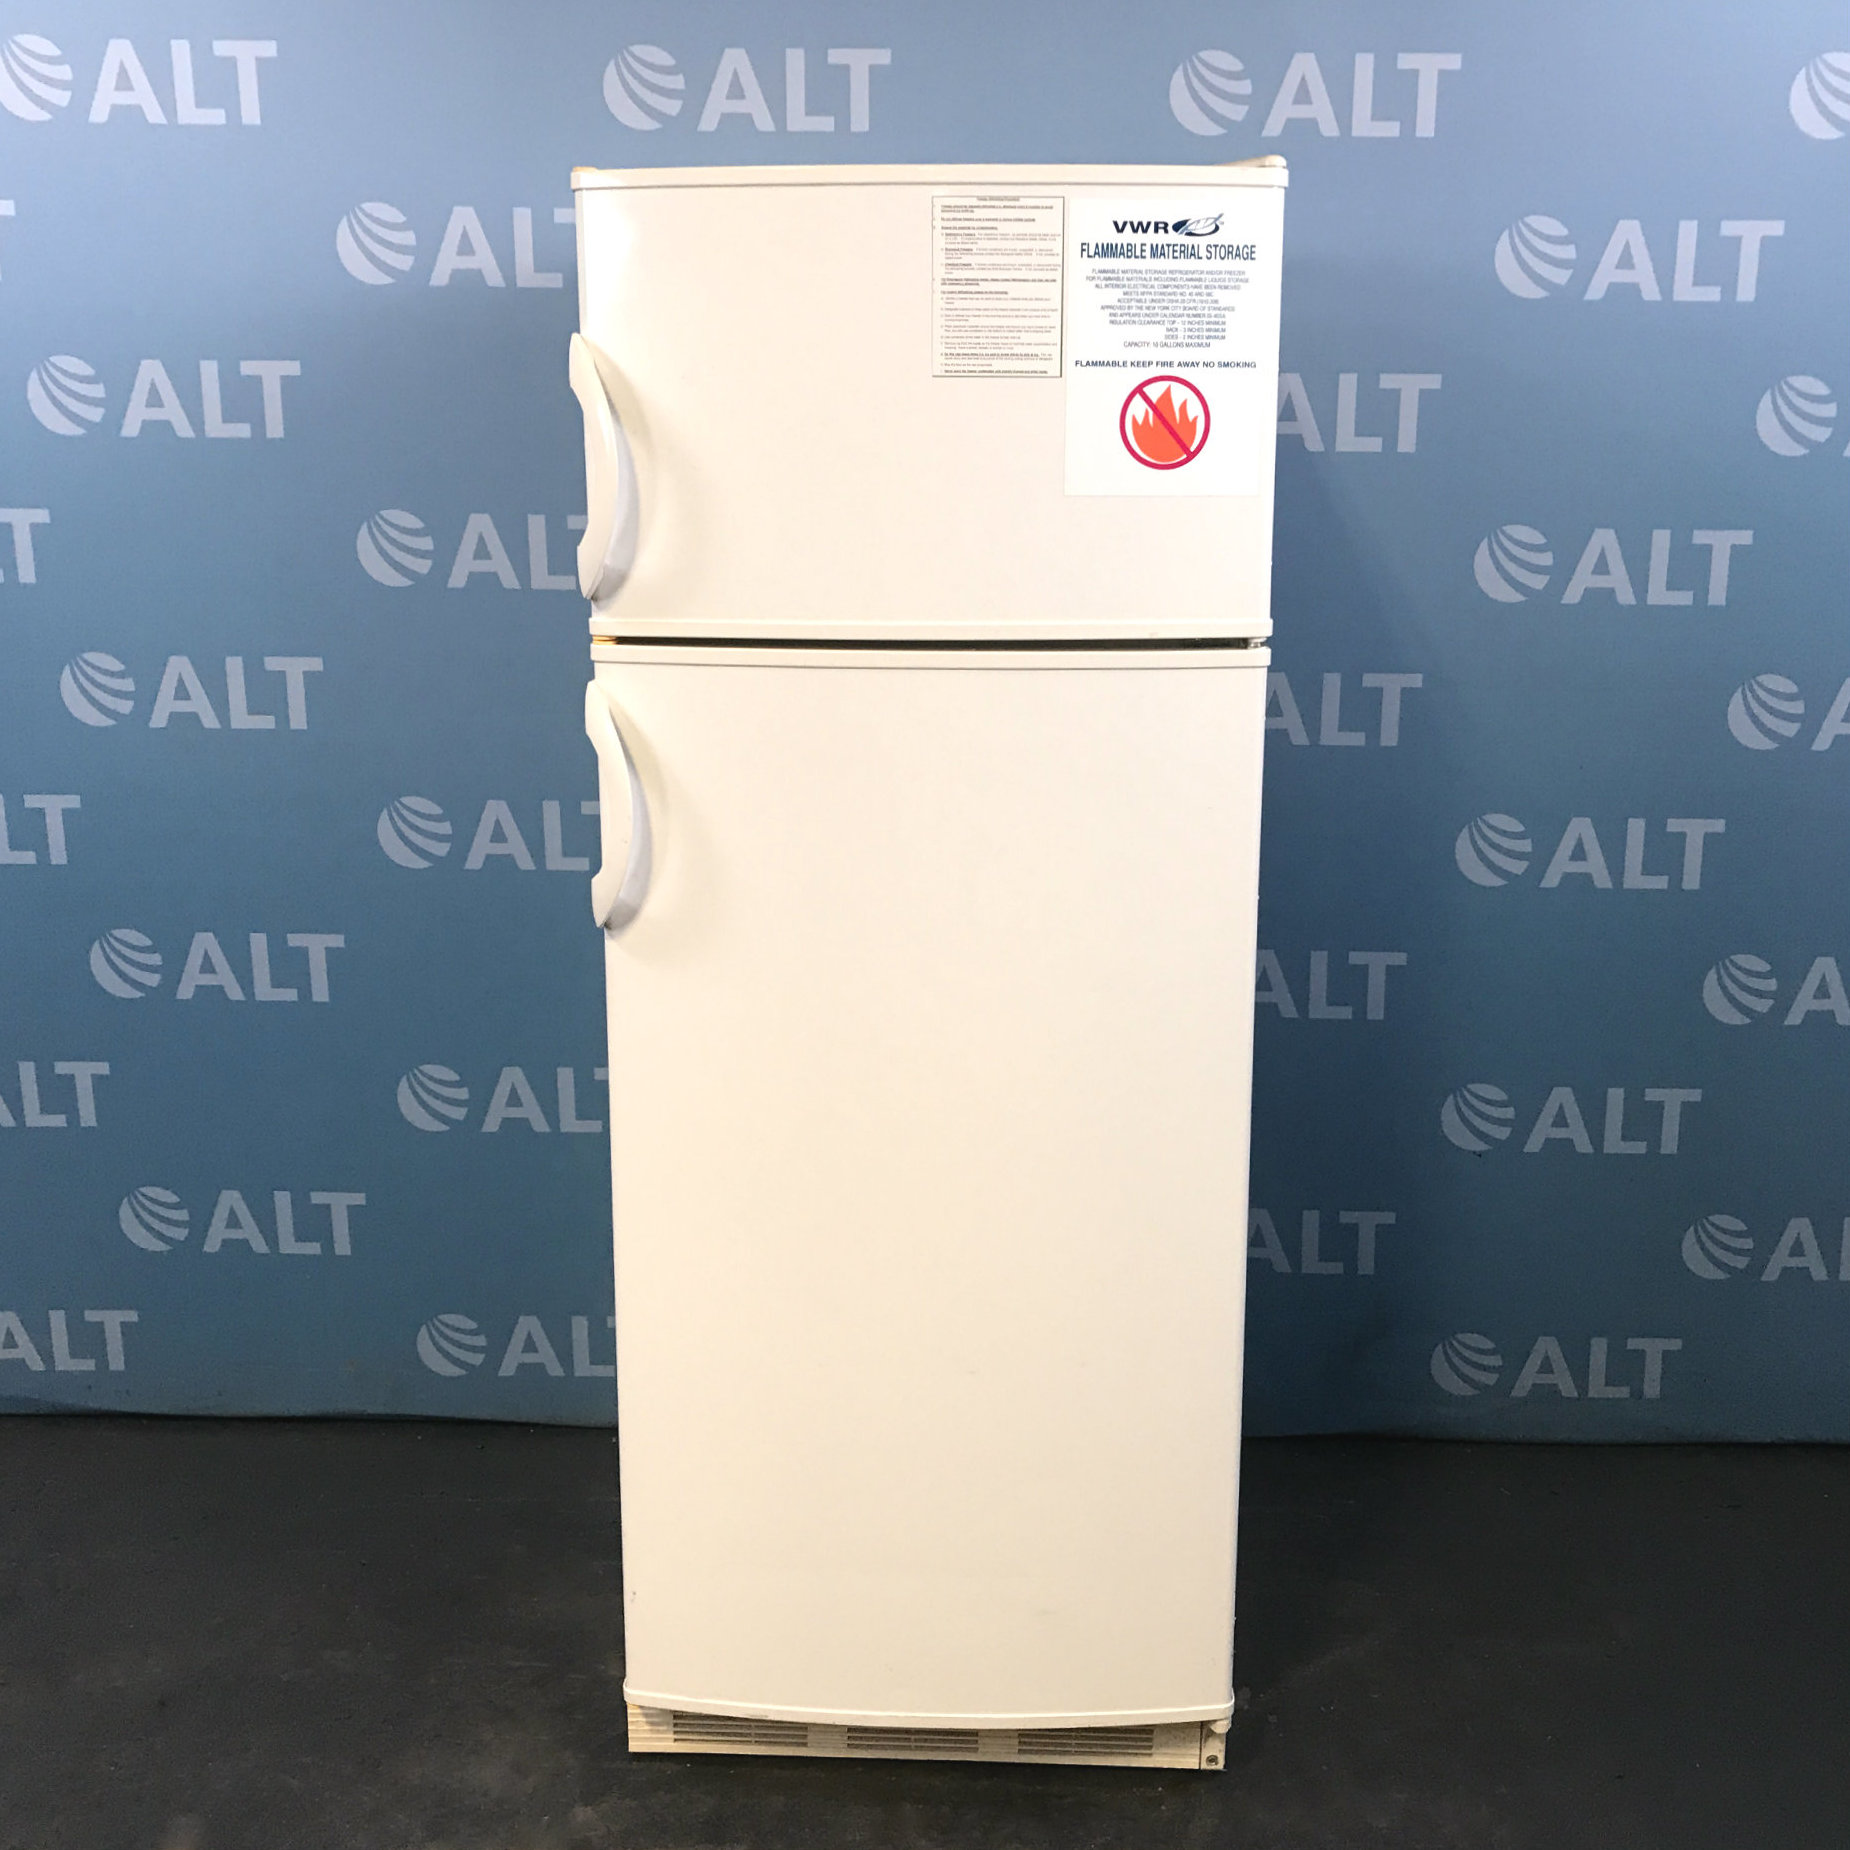 VWR Explosion-Proof and Flammable Material Storage Refrigerator Model 47747-222 Image